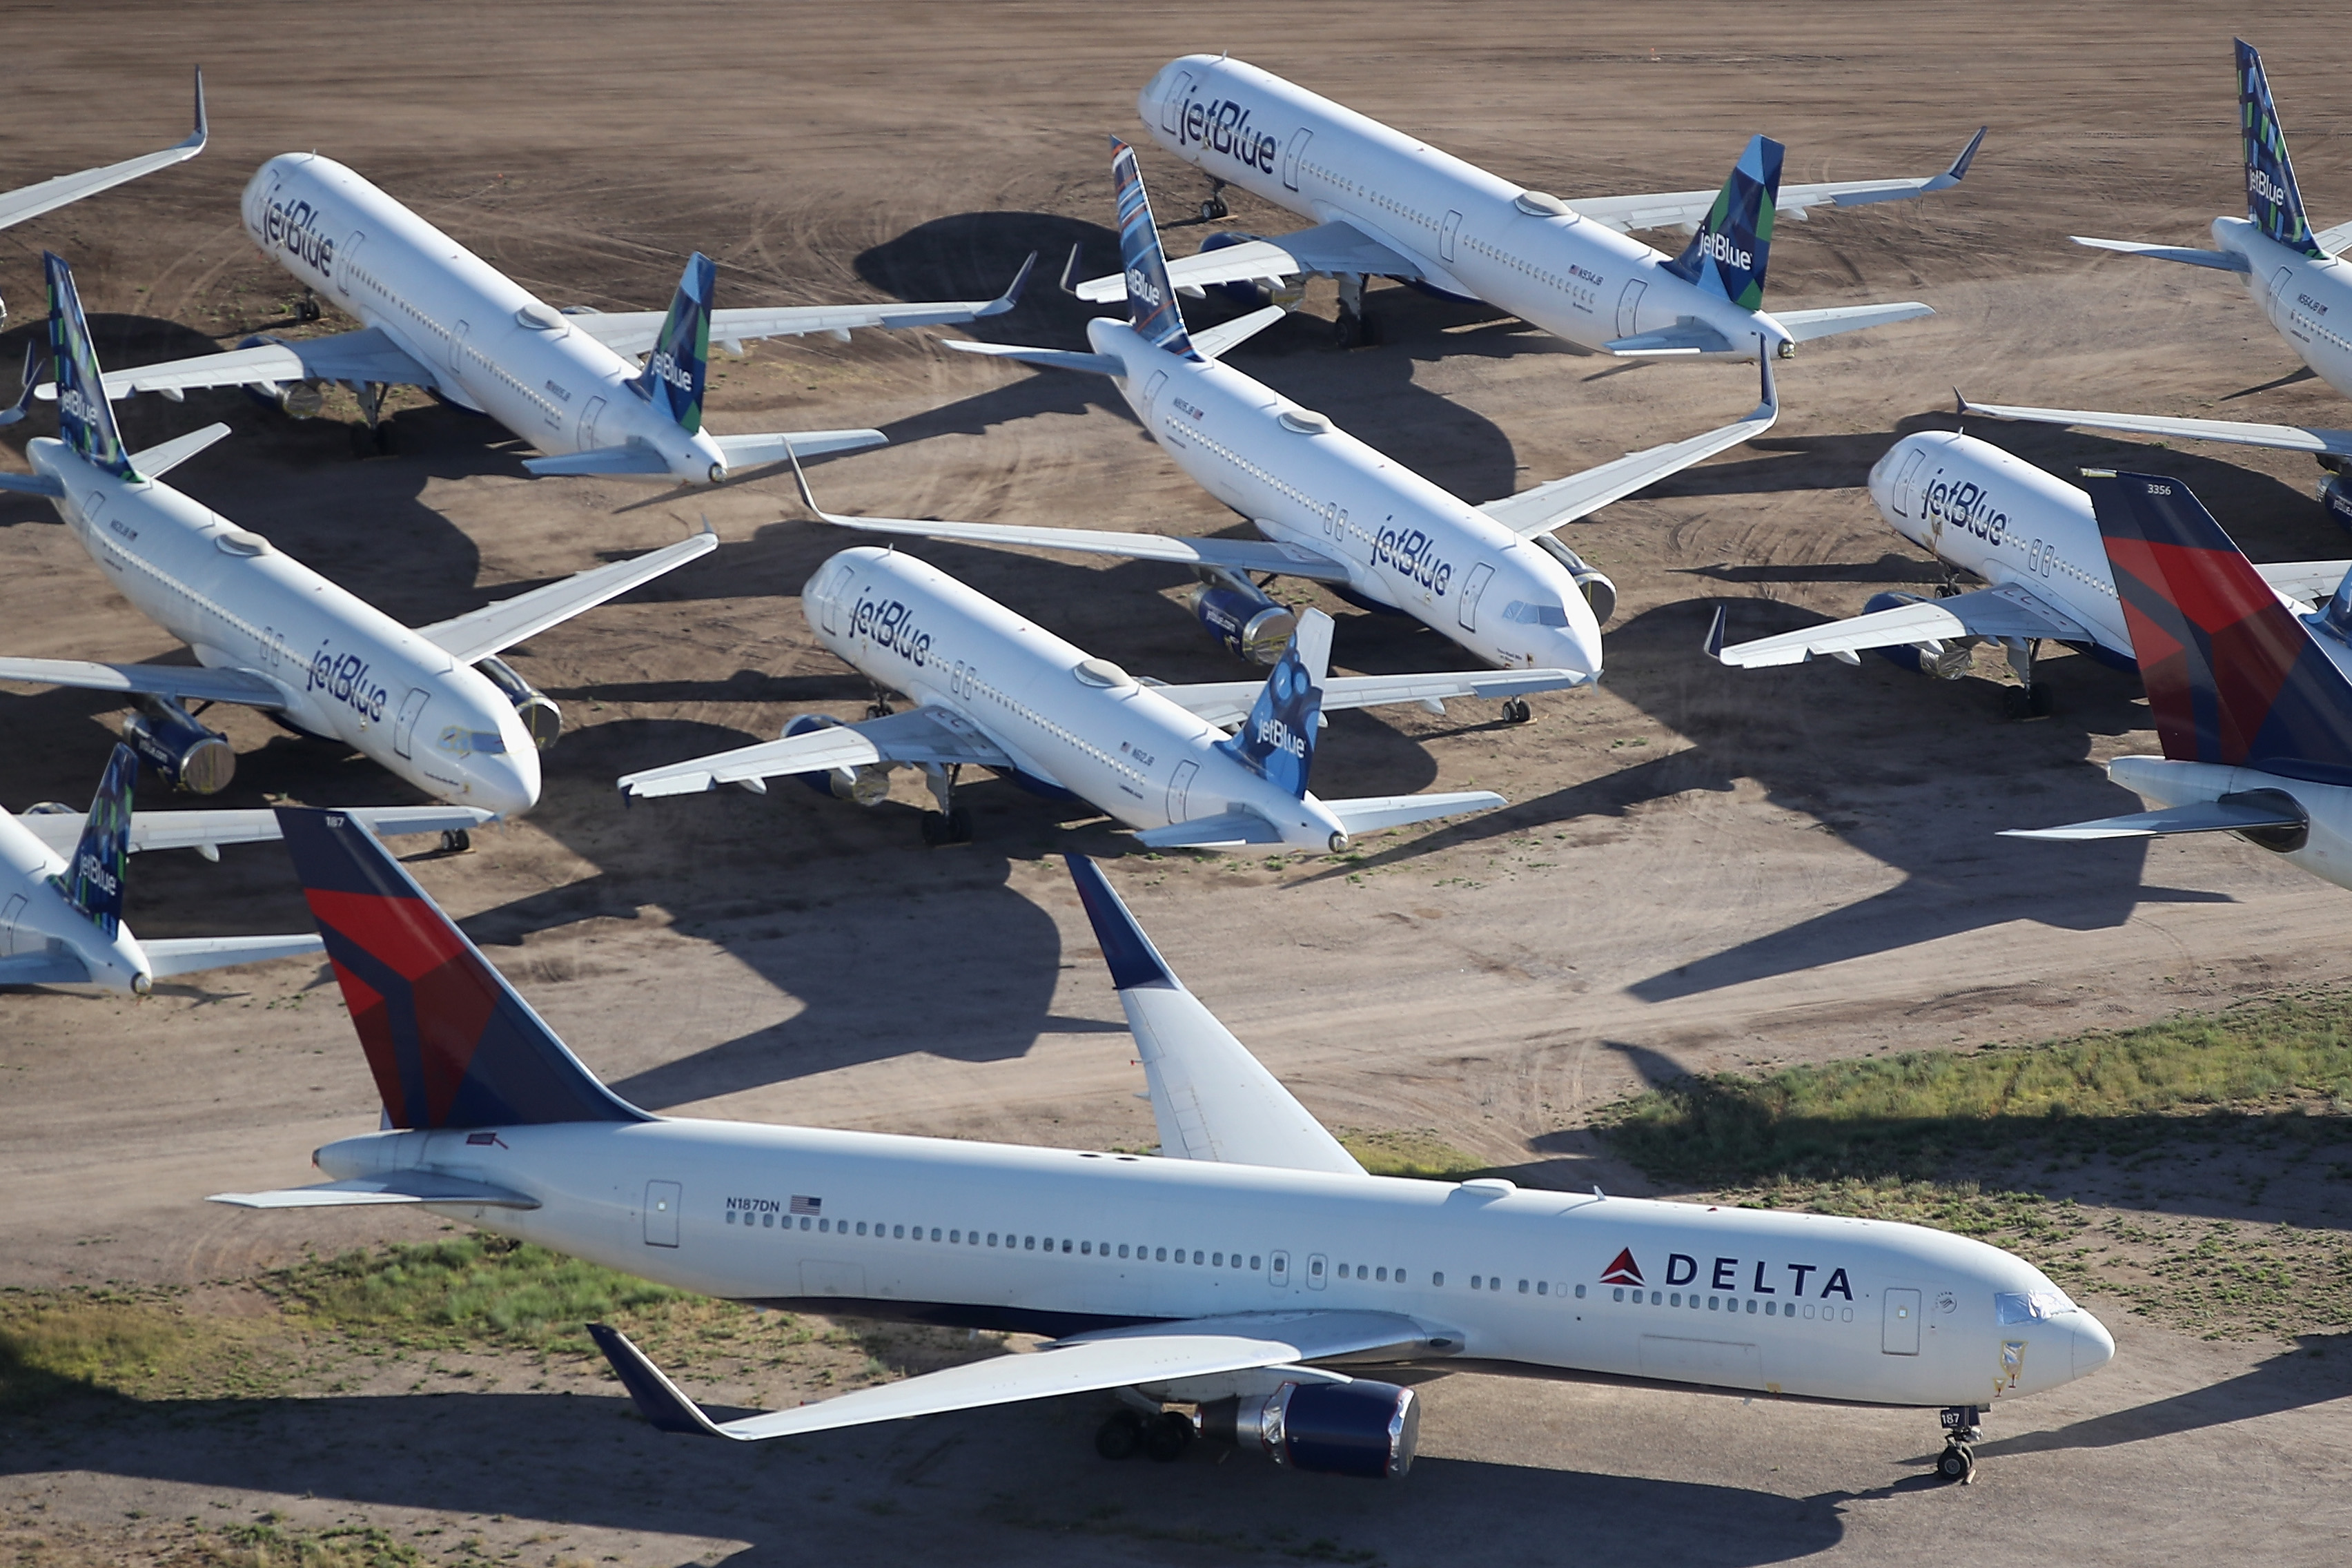 Decommissioned and suspended Delta and jetBlue commercial aircrafts are seen stored in Pinal Airpark on May 16, 2020 in Marana, Arizona. (Photo by Christian Petersen/Getty Images)